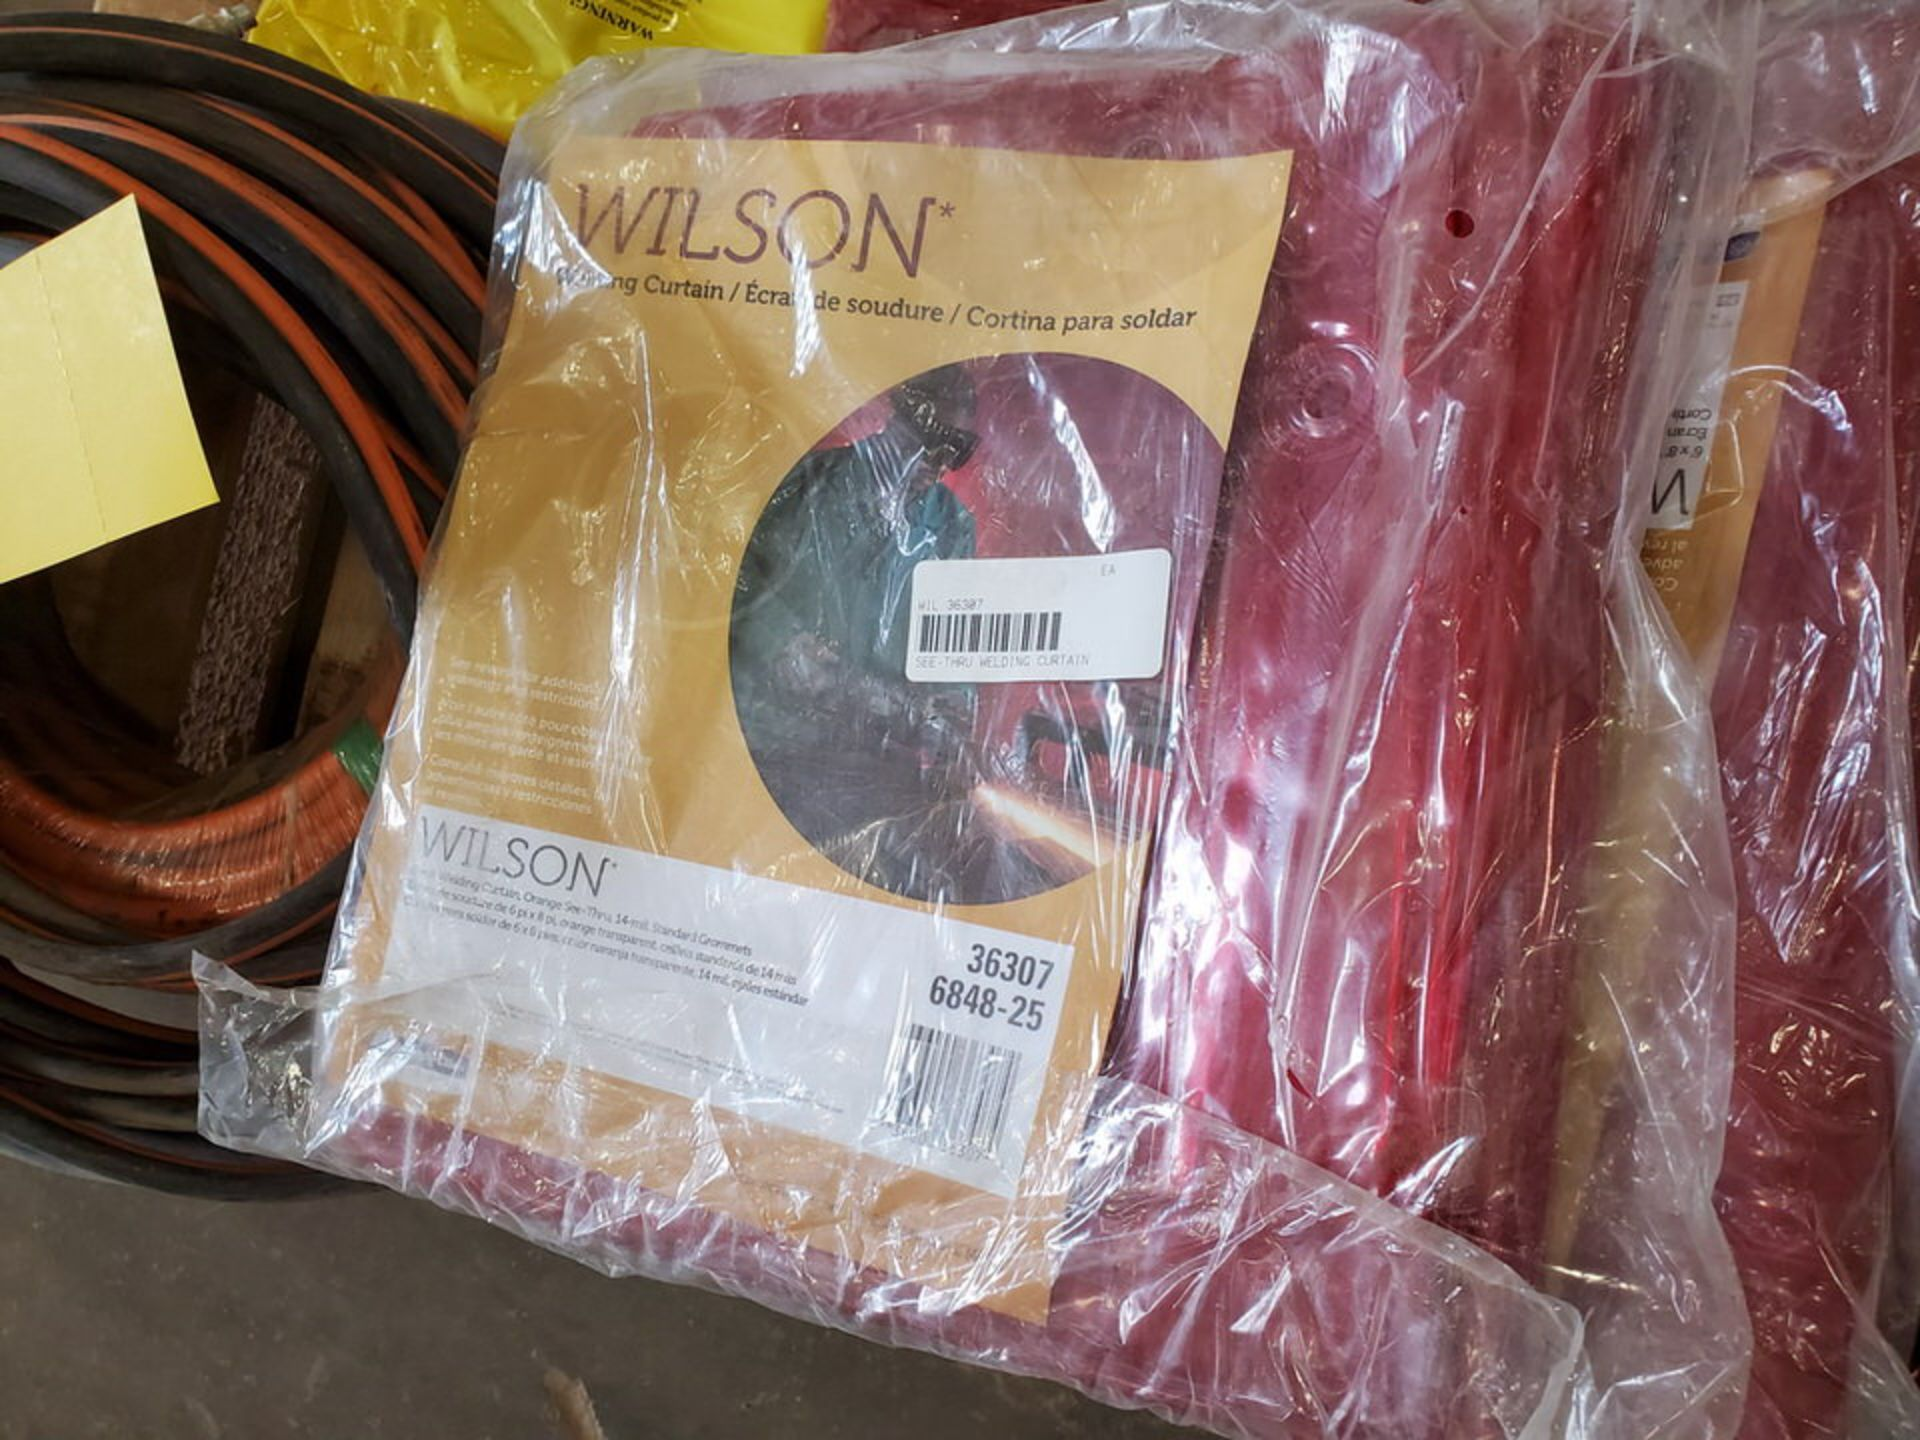 Assorted Welding Material To Include But Not Limited To: Electrode Holders, Gloves, Hoses, Rods, - Image 10 of 12